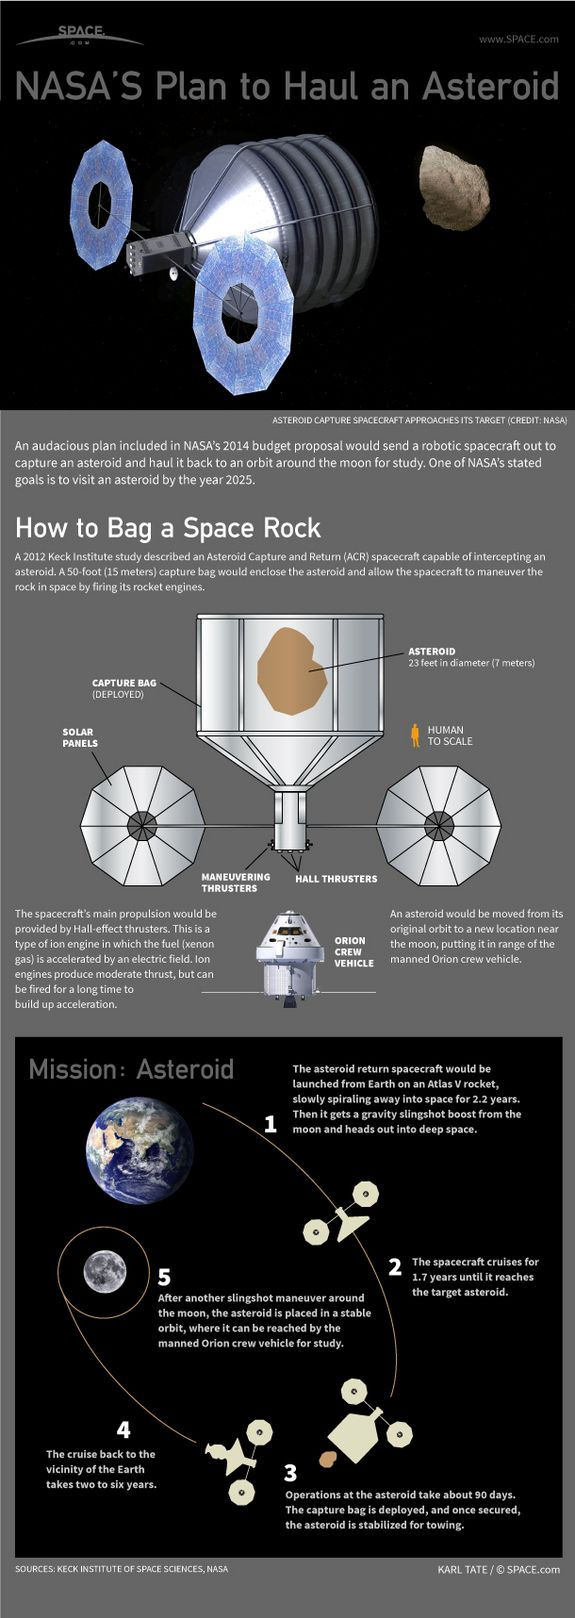 How to Catch an Asteroid: NASA Mission Explained (Infographic)  by Karl Tate, SPACE.com Infographics Artist